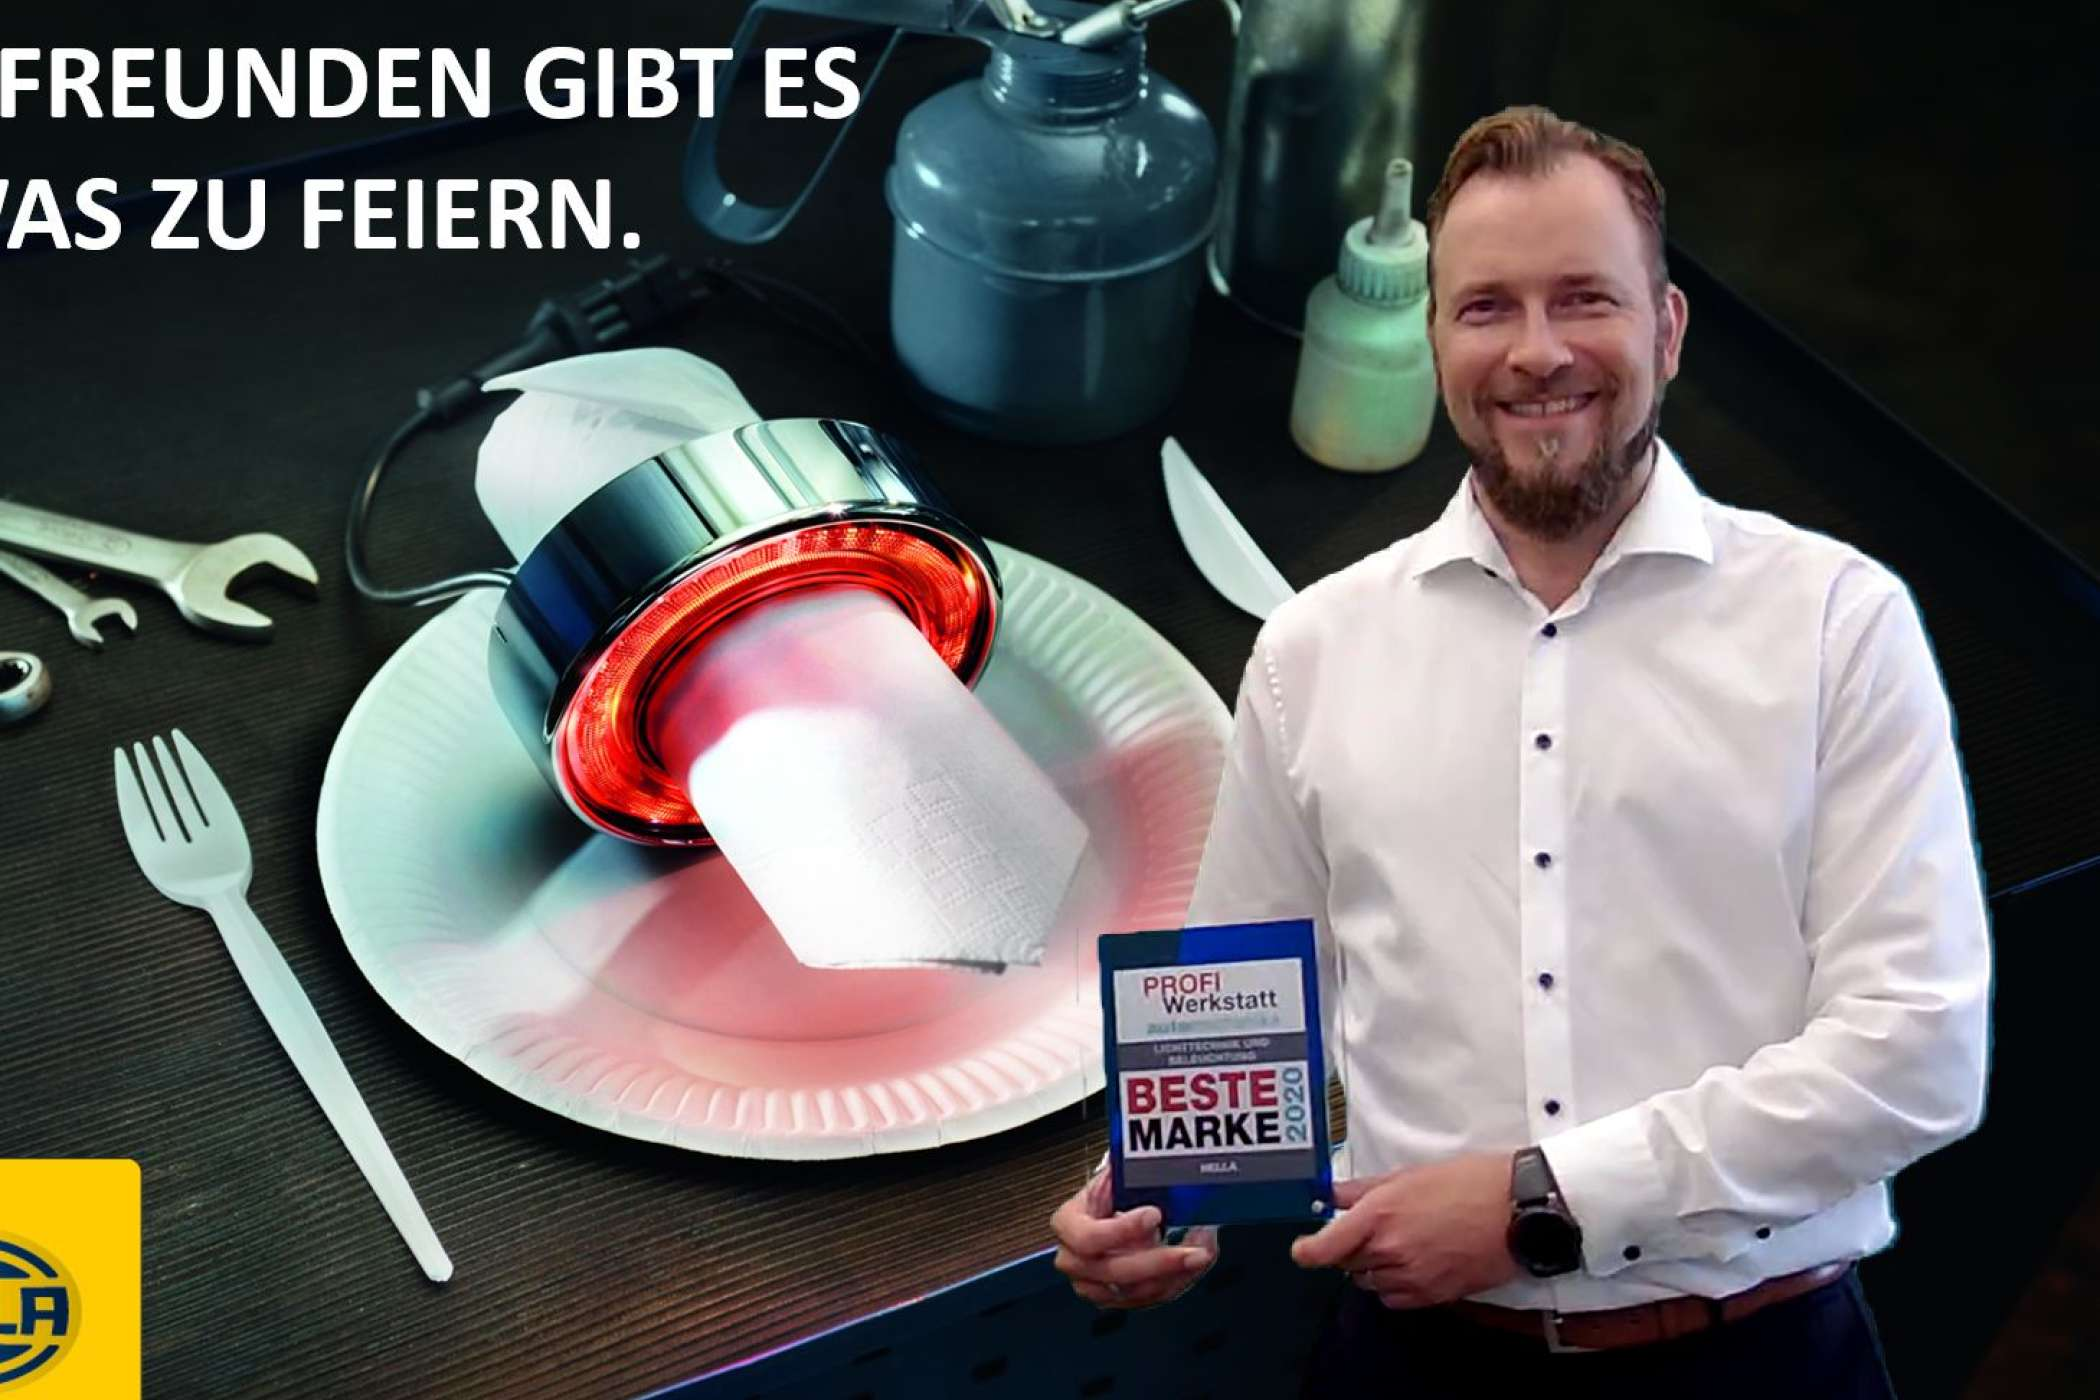 Von Anfang an kann Hella in der Kategorie Lichttechnik und Beleuchtung überzeugen. Jörg Harjes, Director Marketing Independent Aftermarket, nahm den Award in Empfang. Foto: Hella.